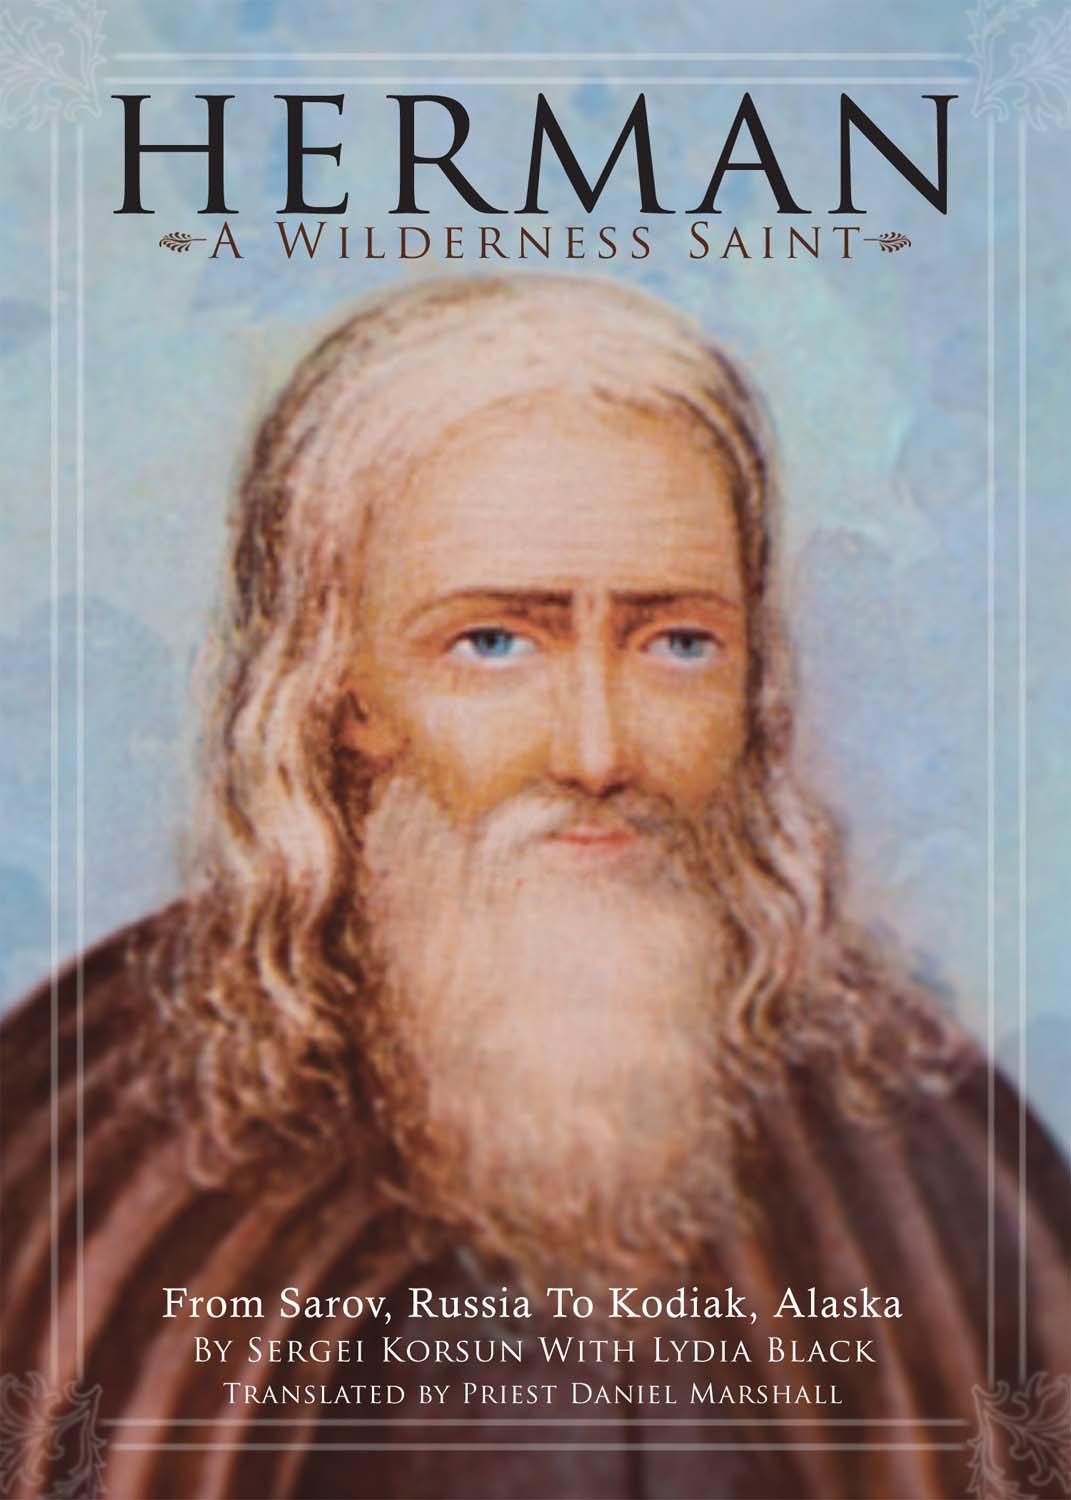 Herman - A Wilderness Saint